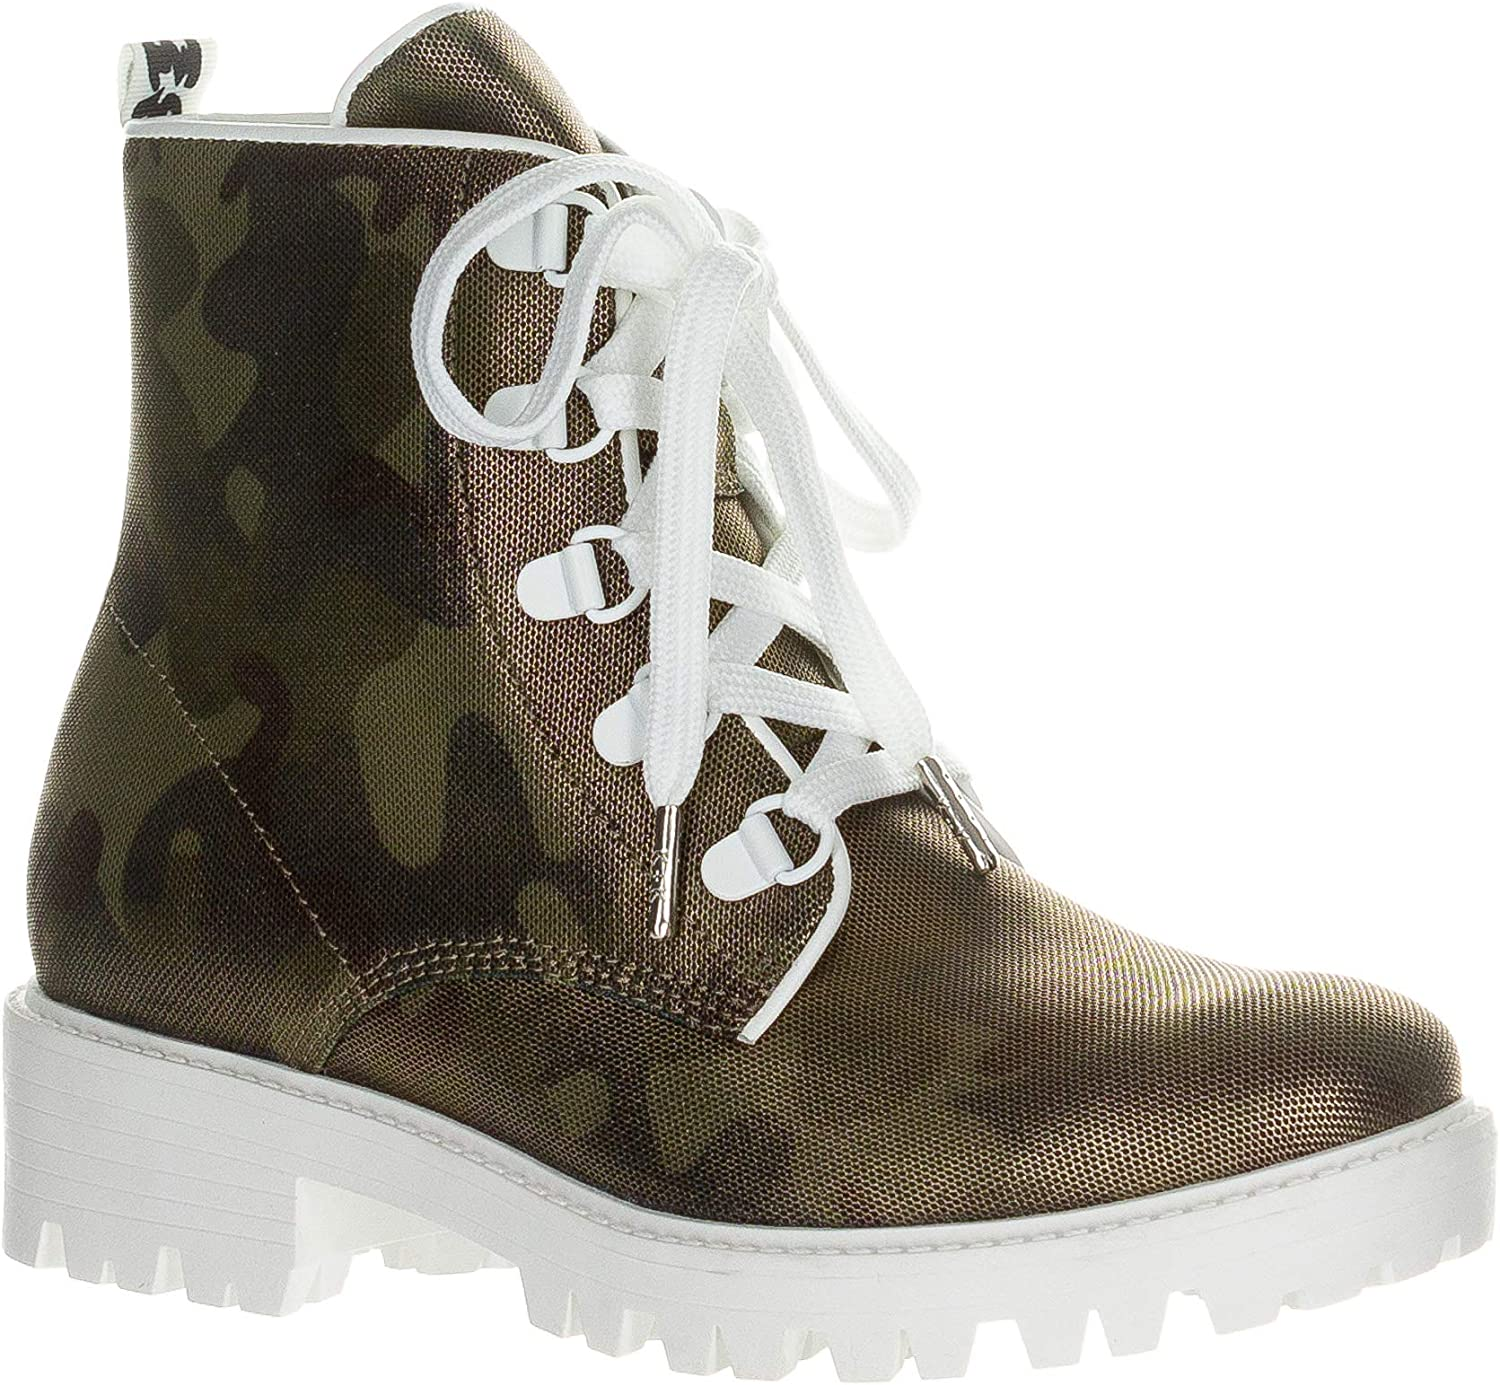 Kendall + Kylie Women's Epic Color Award Options Ankle 5% OFF Boot